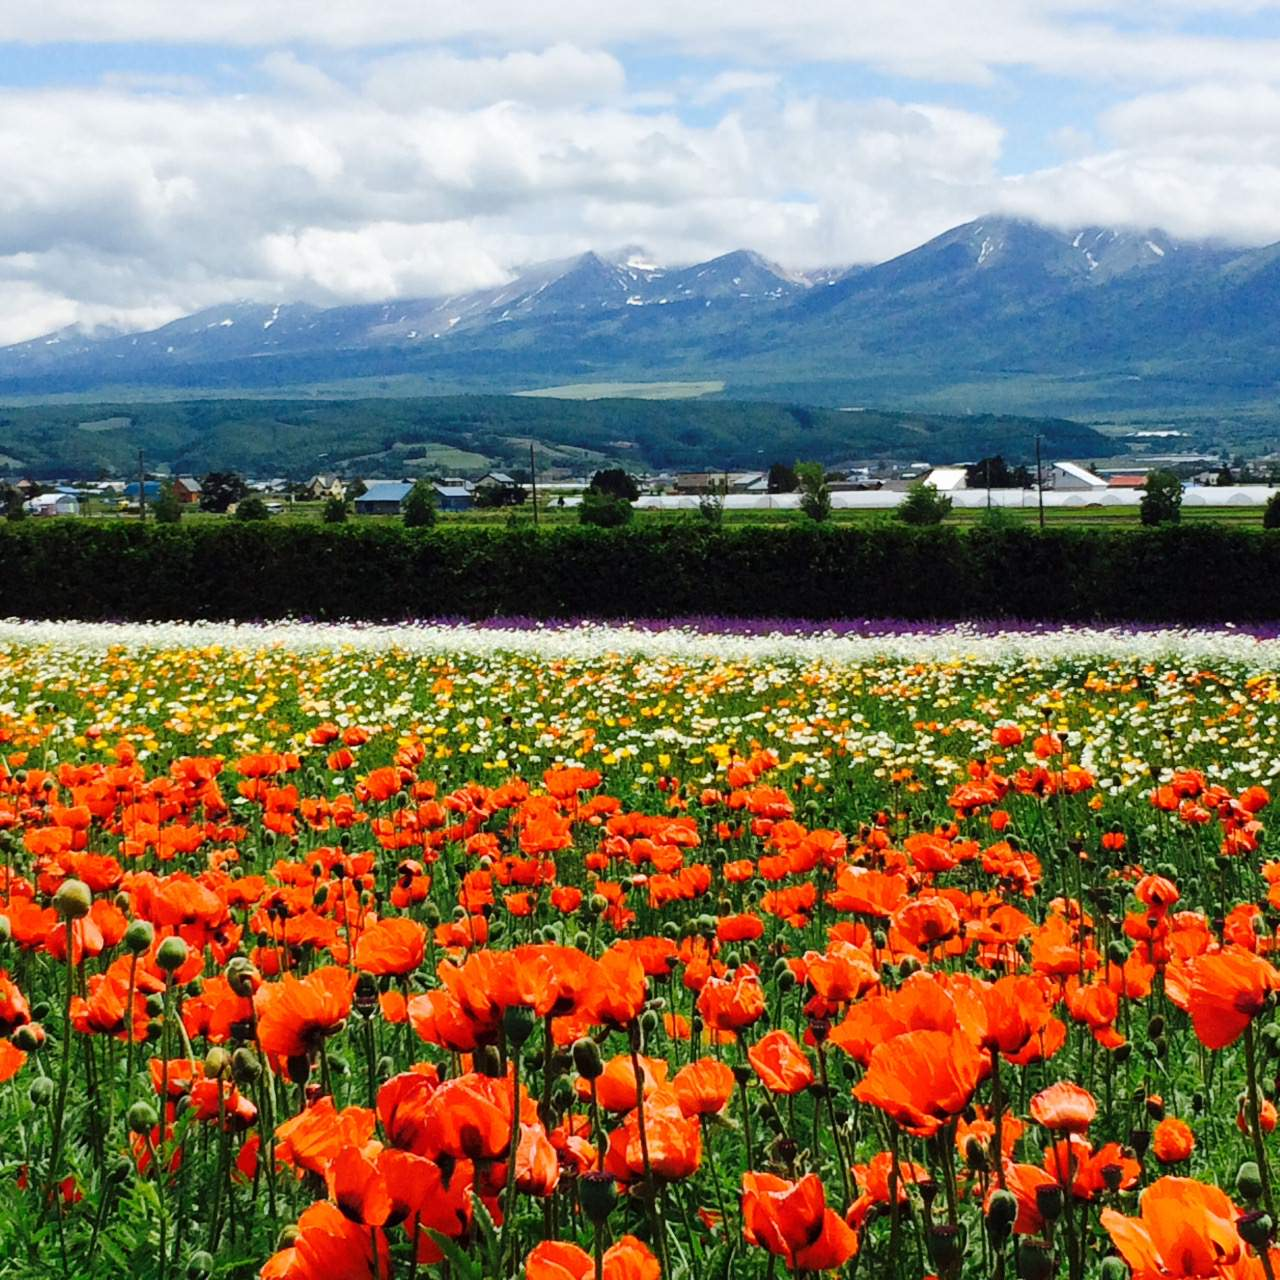 Flower fields surrounded by mountains